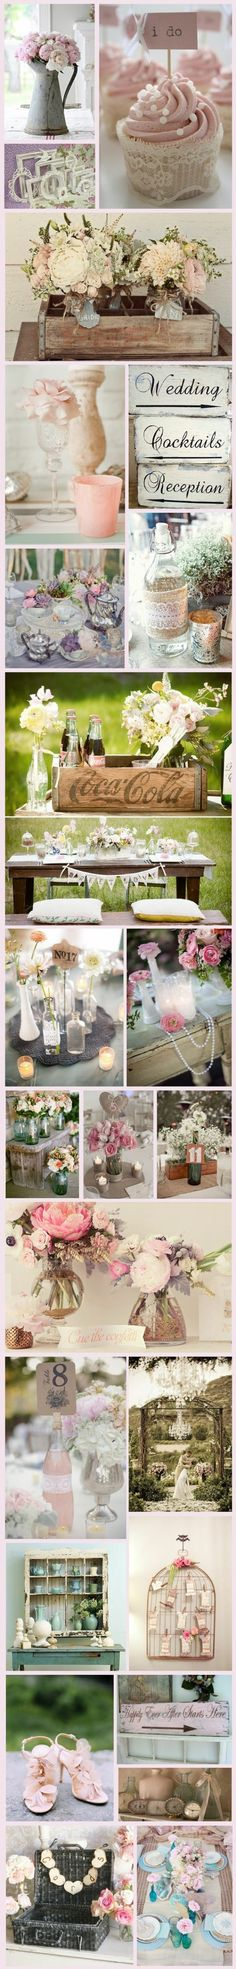 Secret Garden Chic Cottage Wedding-Love